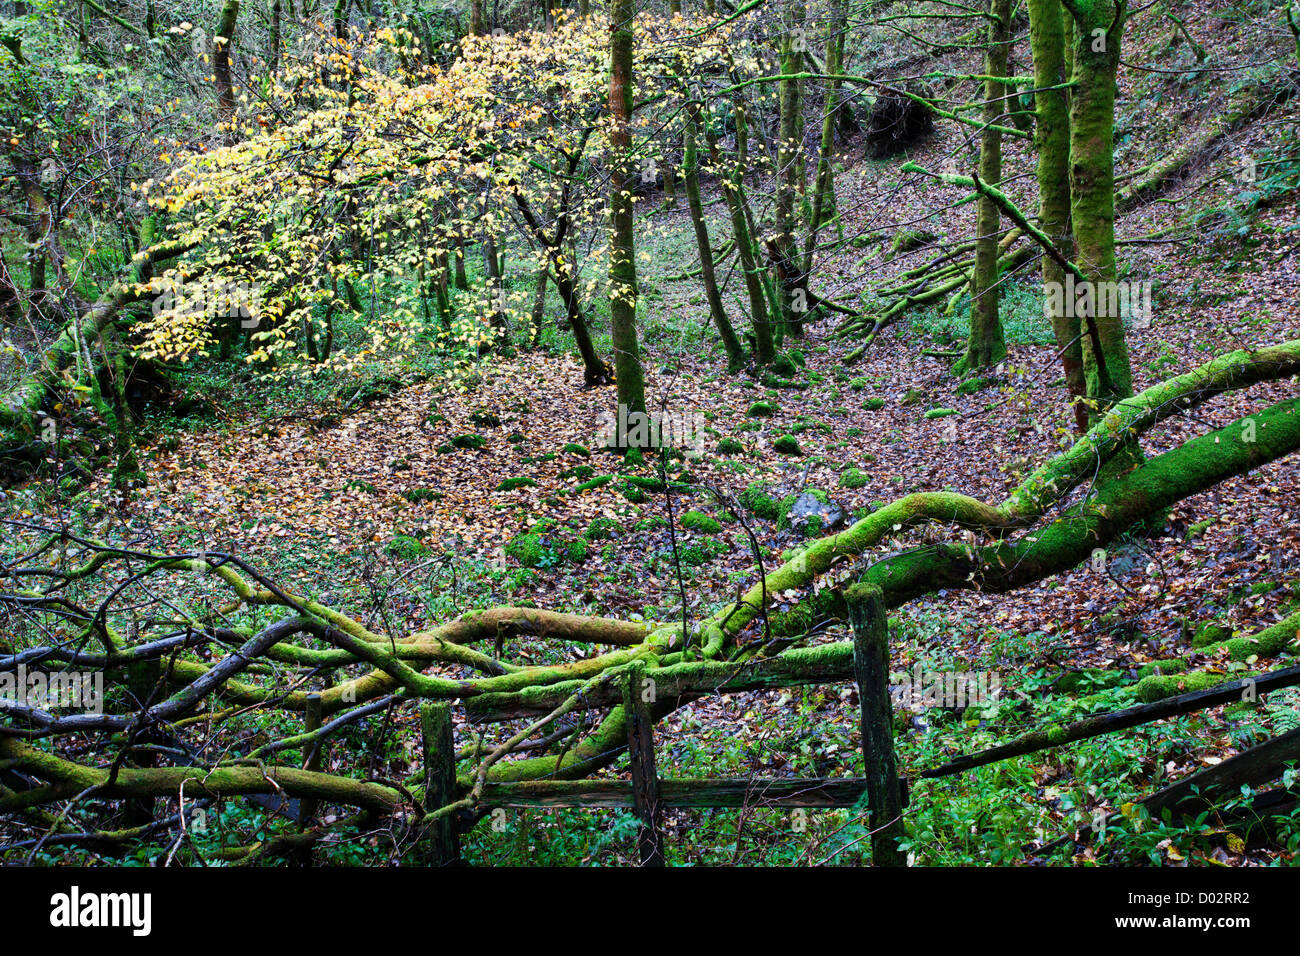 Mossy Fence in Brundholme Woods in Autumn Keswick Cumbria England - Stock Image